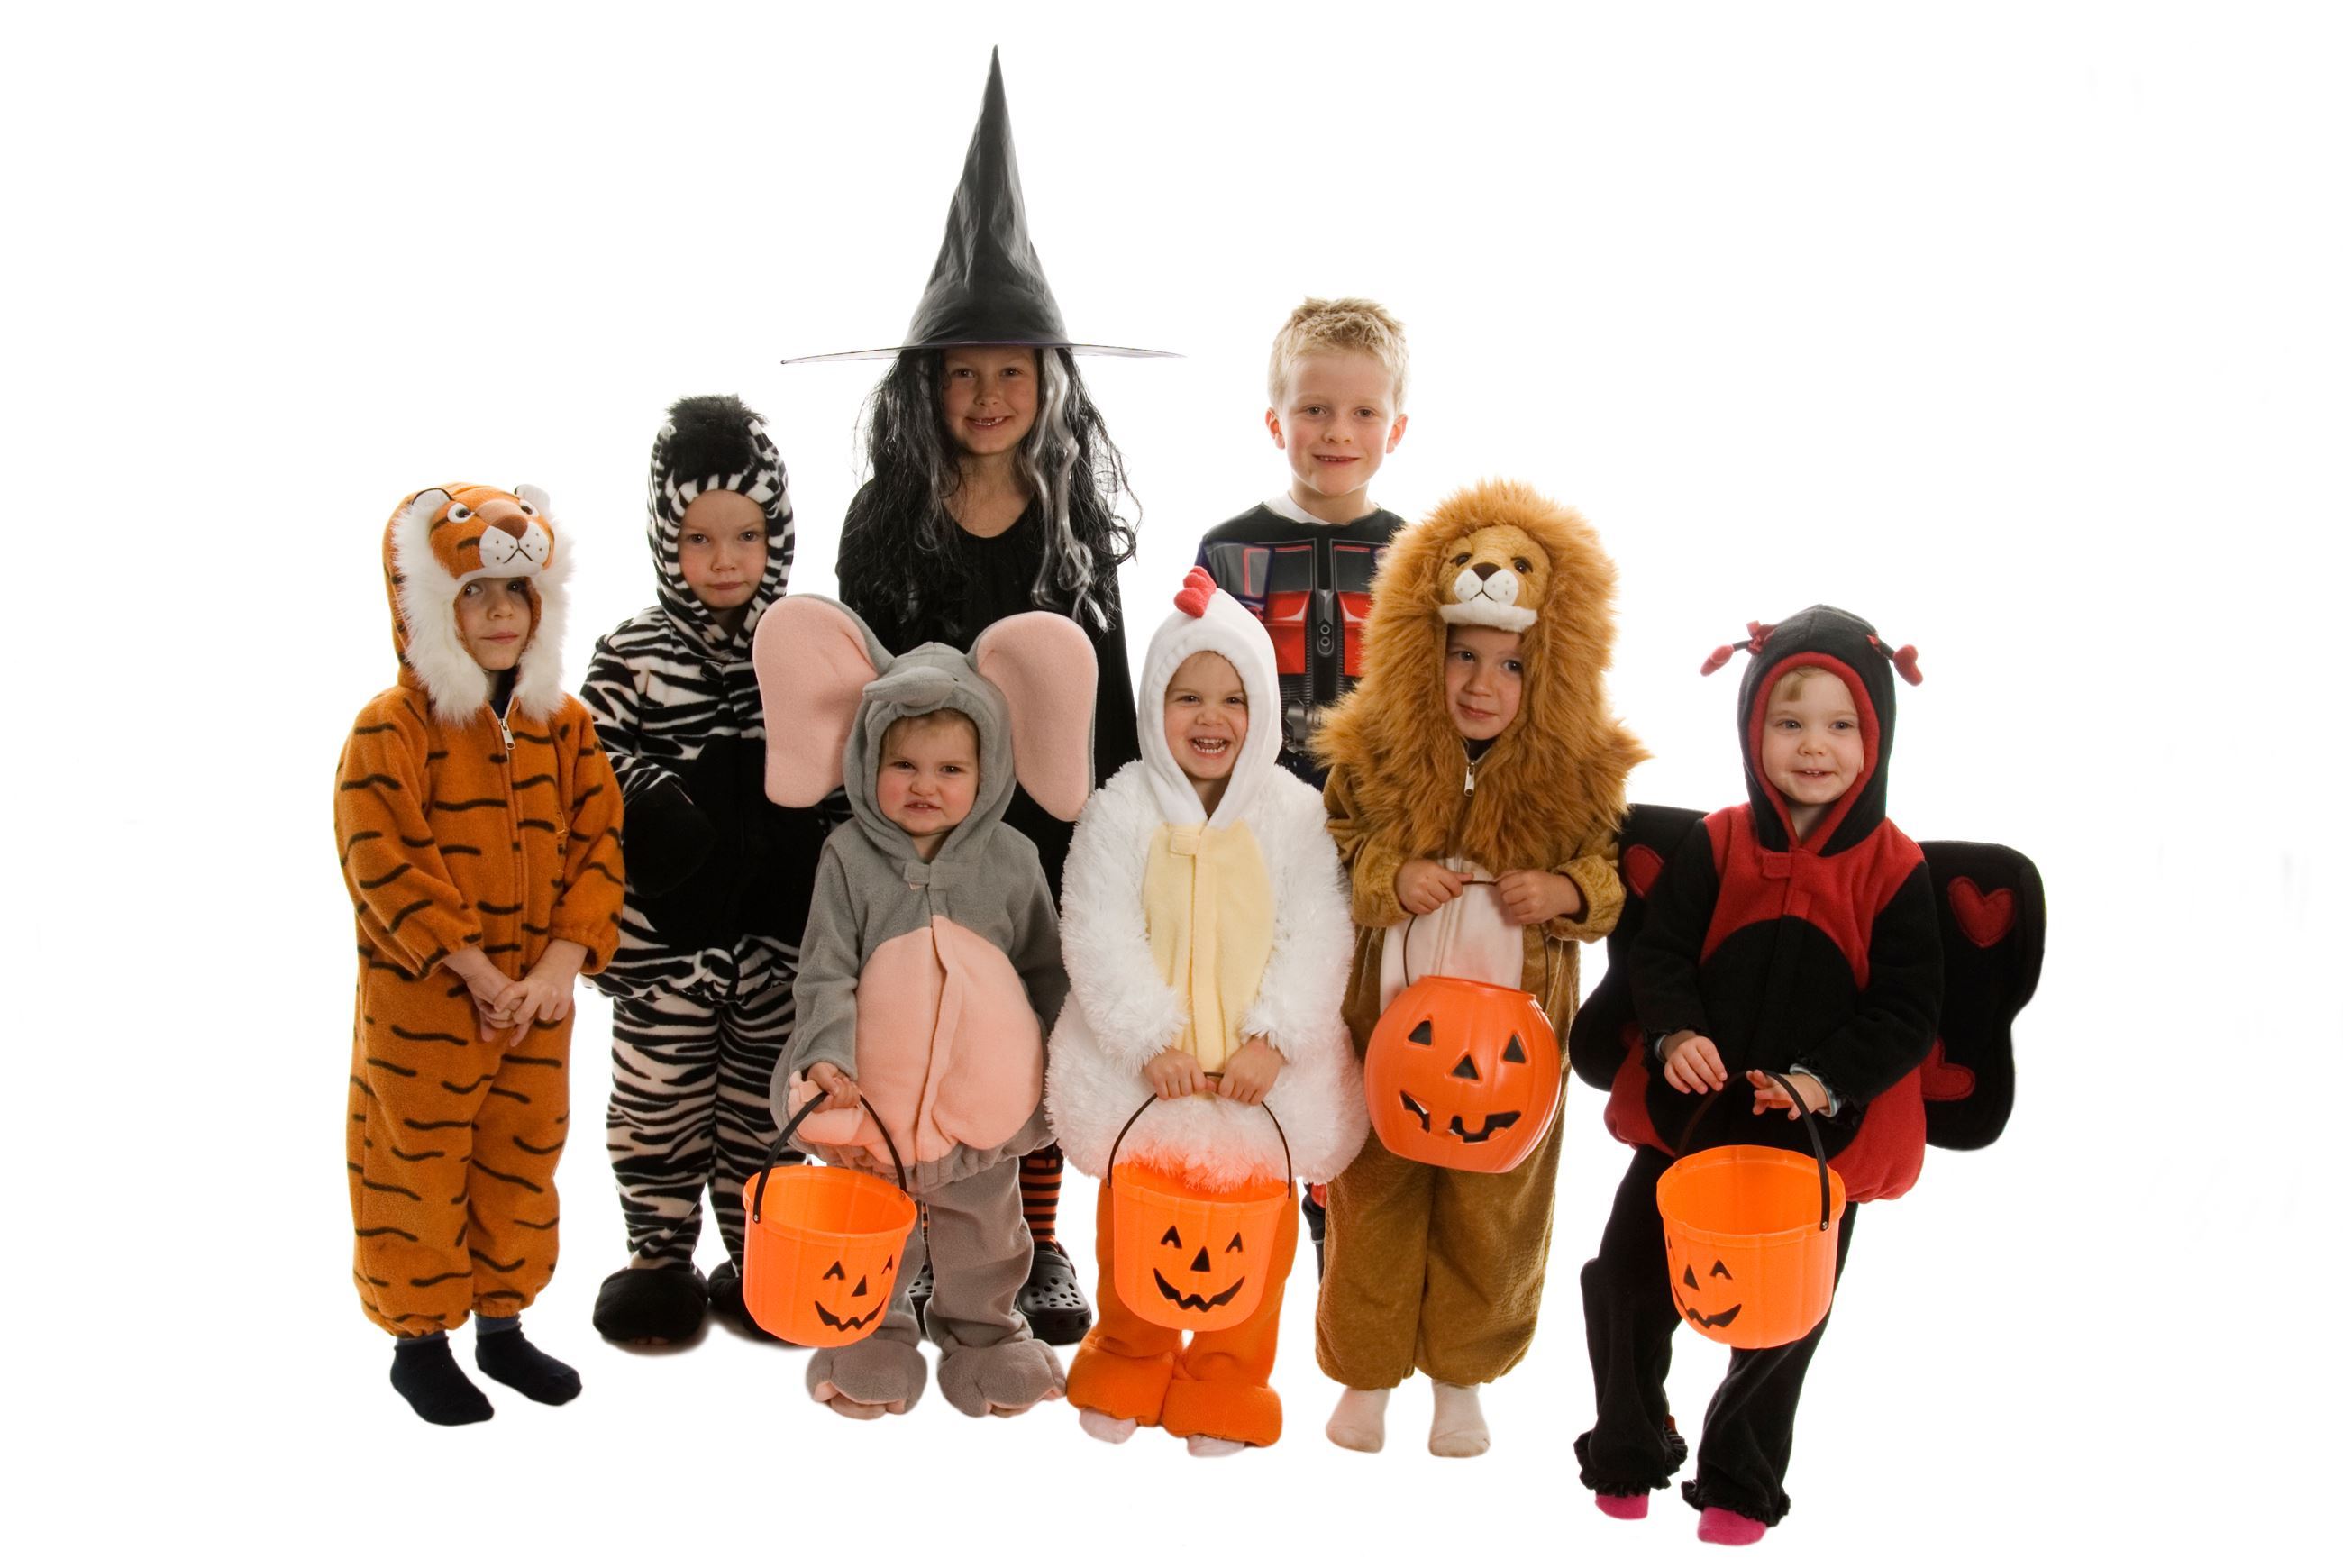 Group of young kids dressed in Halloween costumes